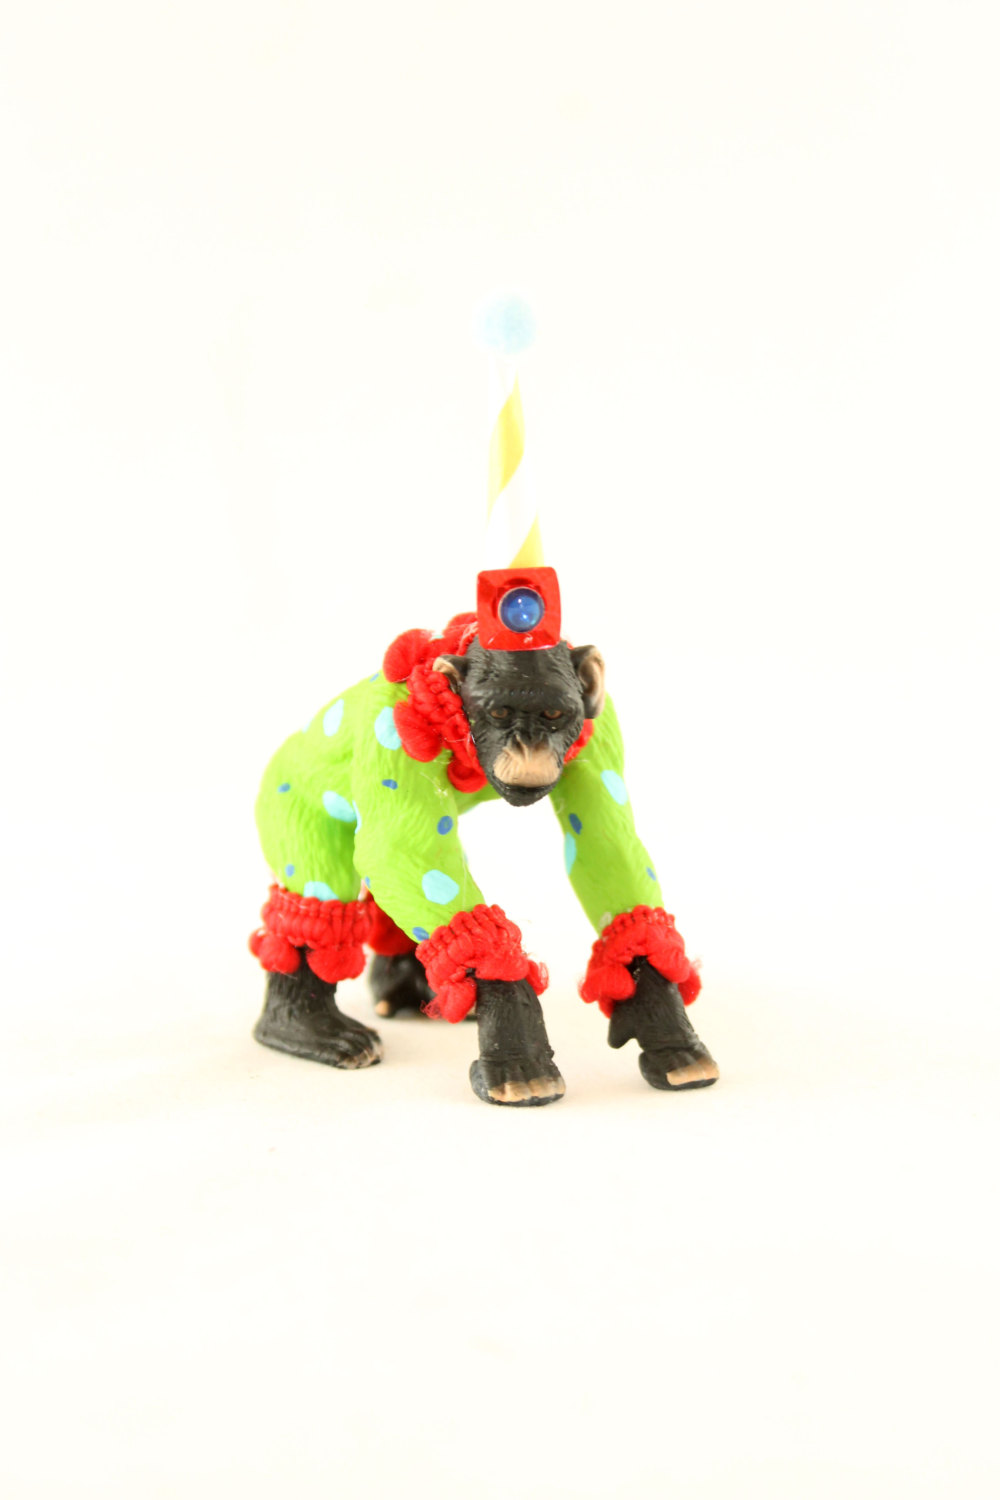 Chimp Circus Cake Topper / Monkey Birthday Party Table Decoration from Painted Parade / see more on www.GiggleHearts.com